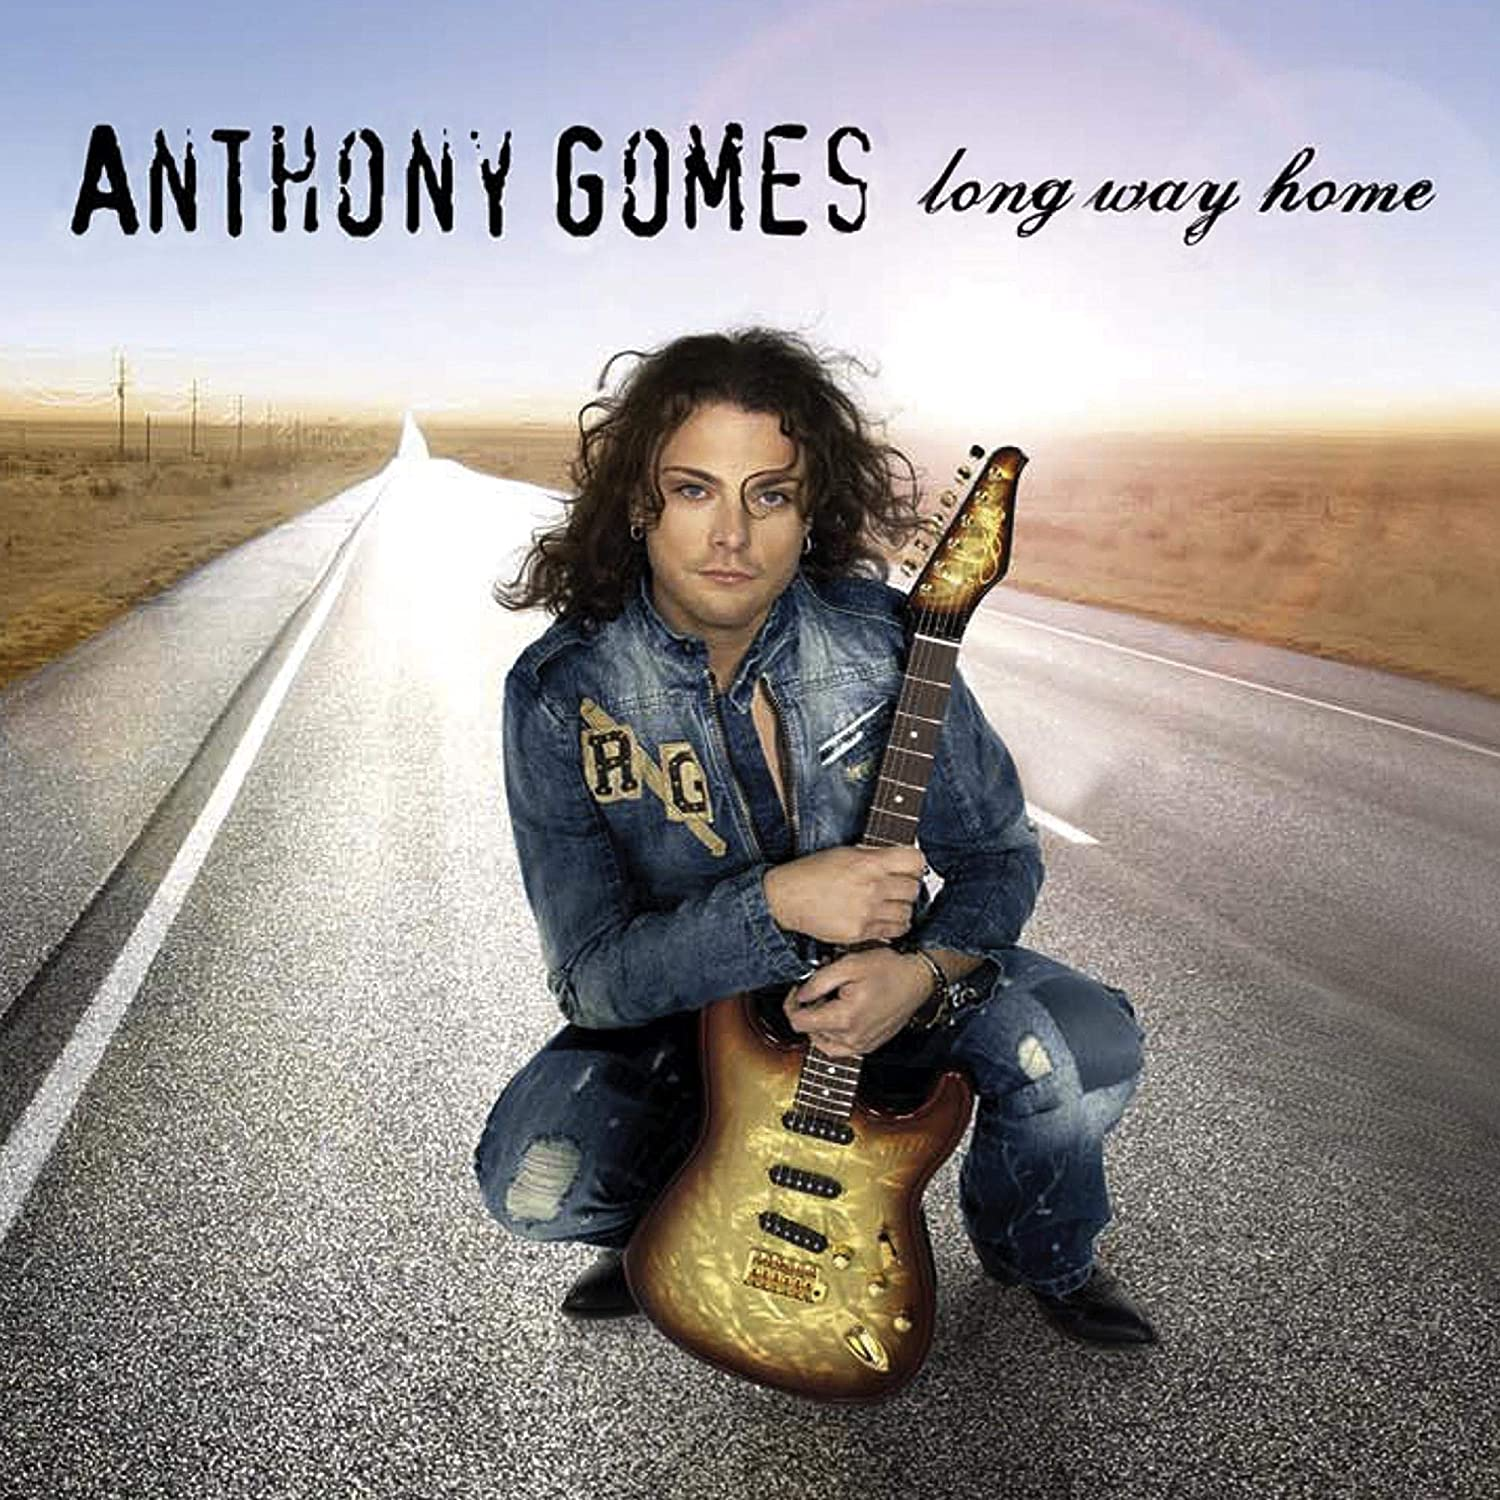 Anthony Gomes - Long Way Home [CD] - Urban Vinyl | Records, Headphones, and more.